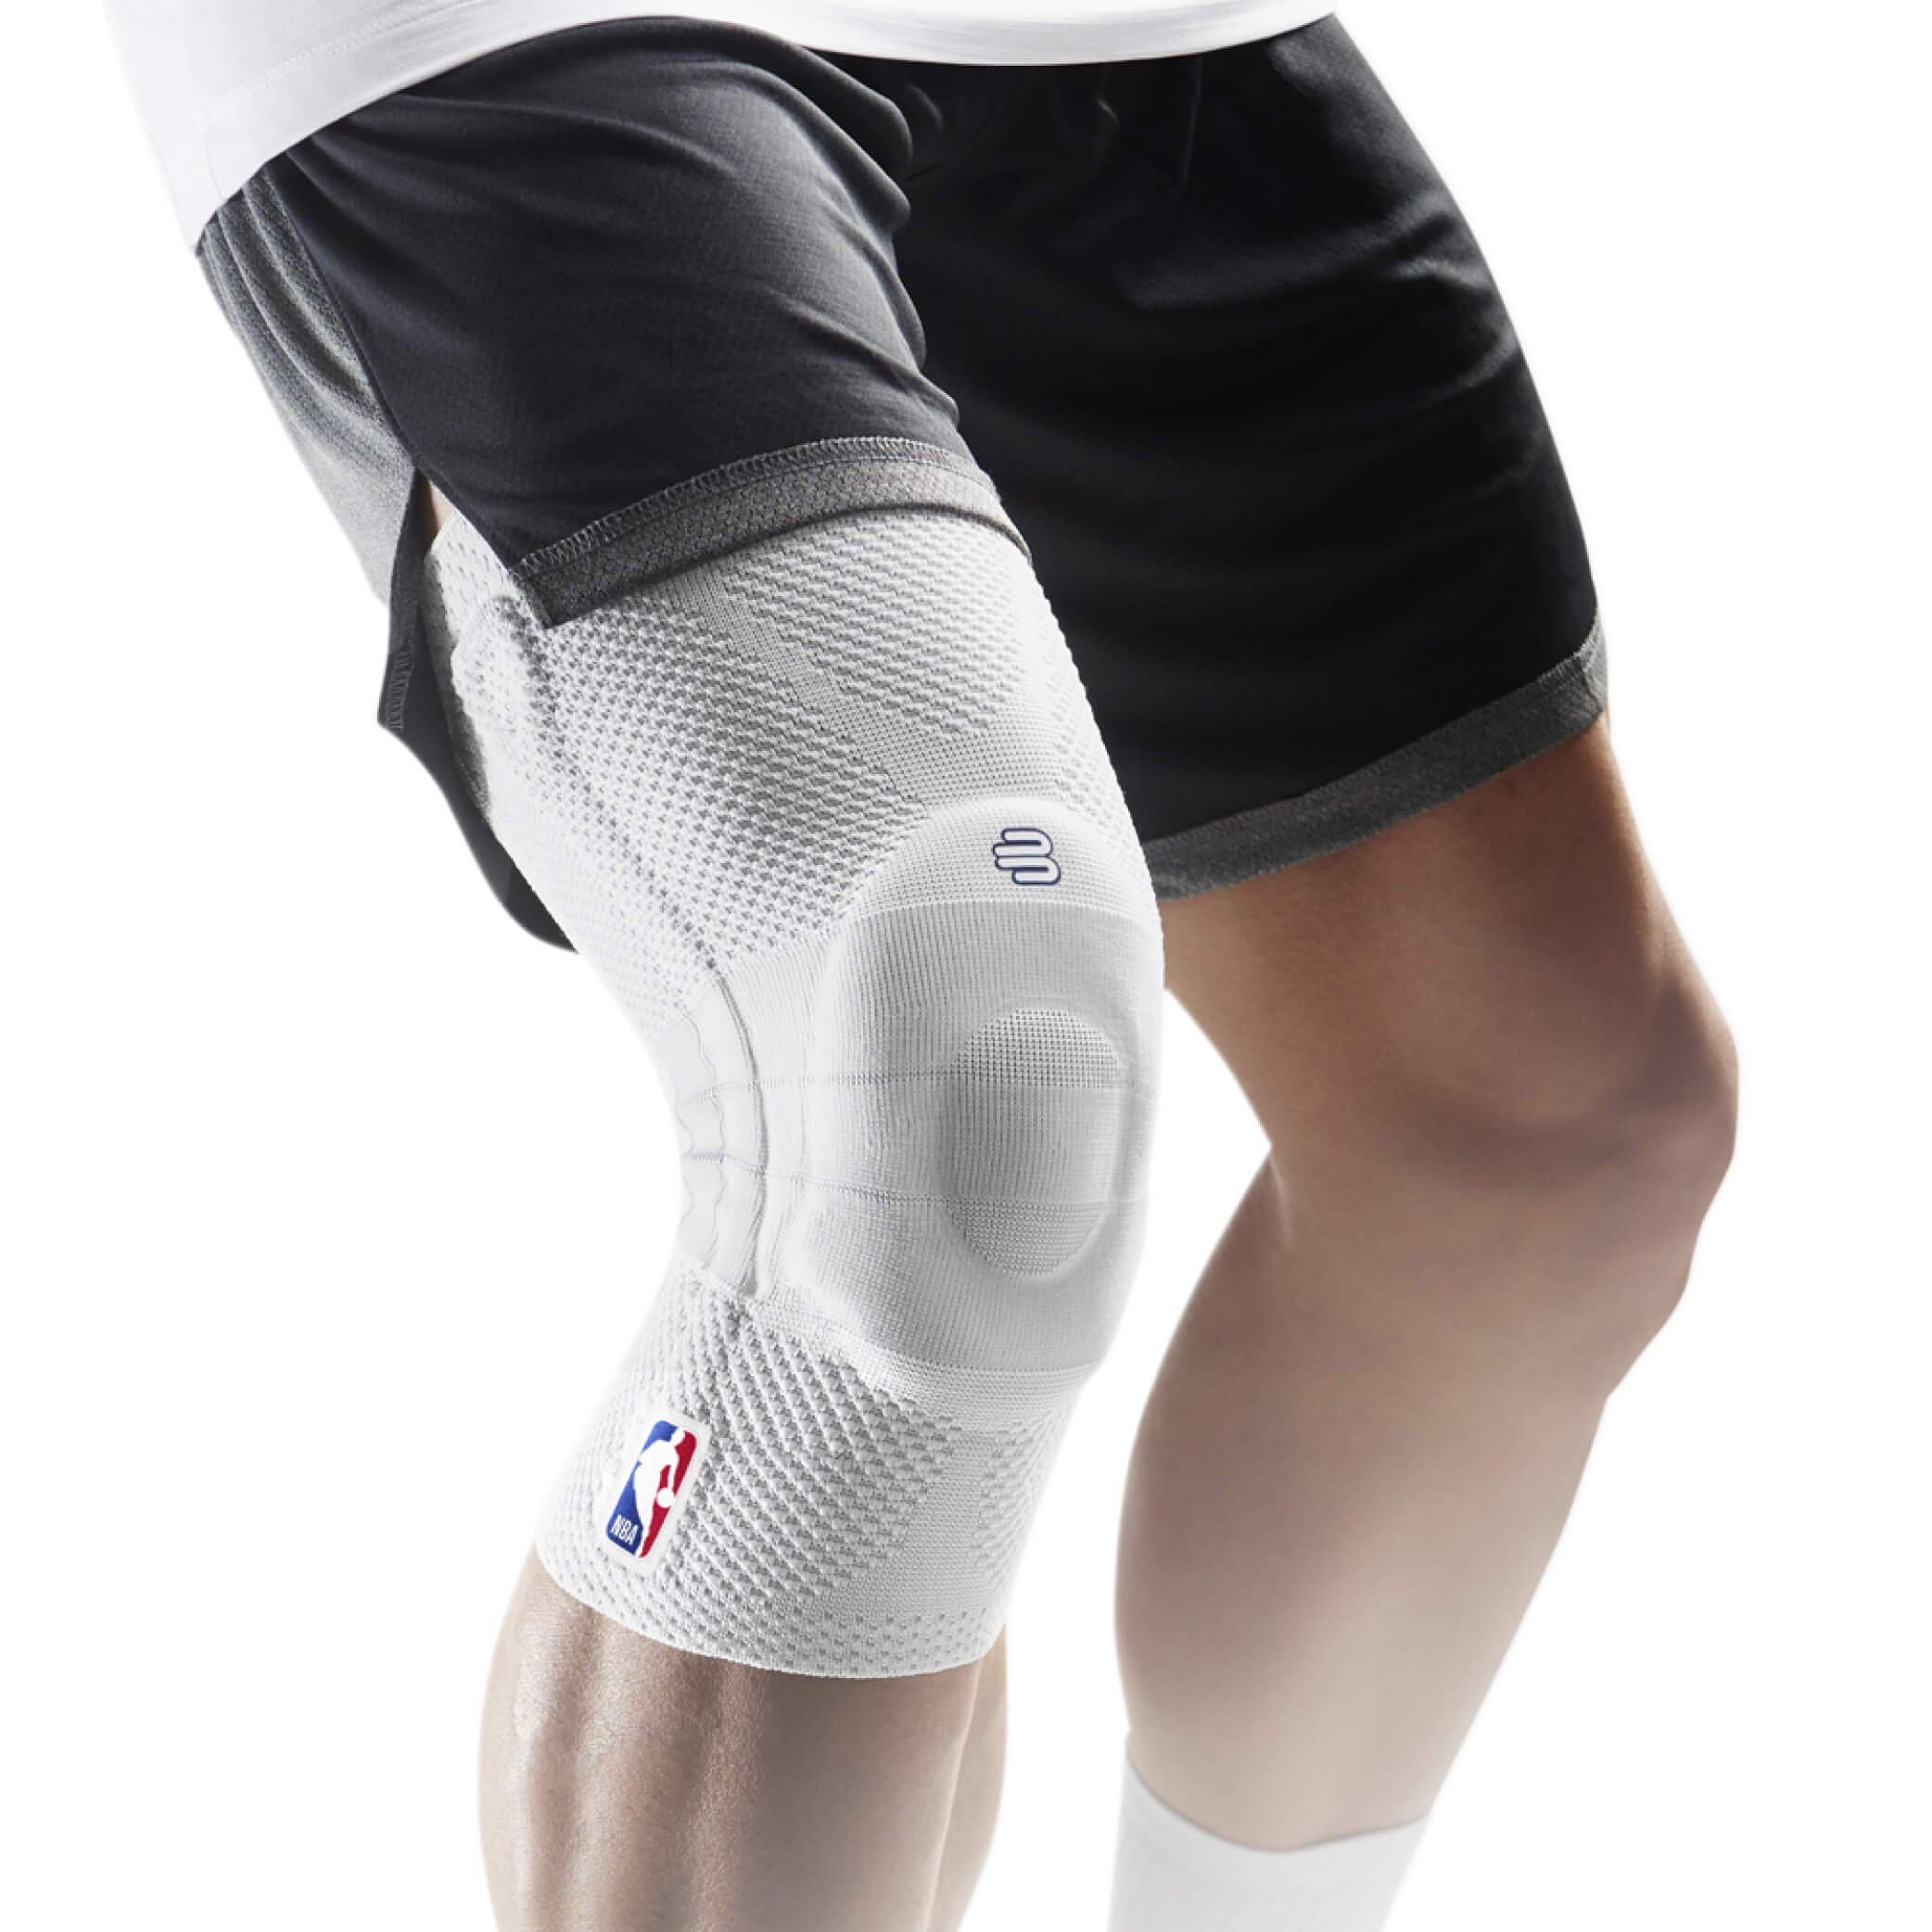 Bauerfeind GenuTrain NBA Knee Brace - Basketball Support with Medical Compression - Sleeve Design with Patella Pad Gel Ring for Pain Relief & Stabilization (White, S) by Bauerfeind (Image #1)